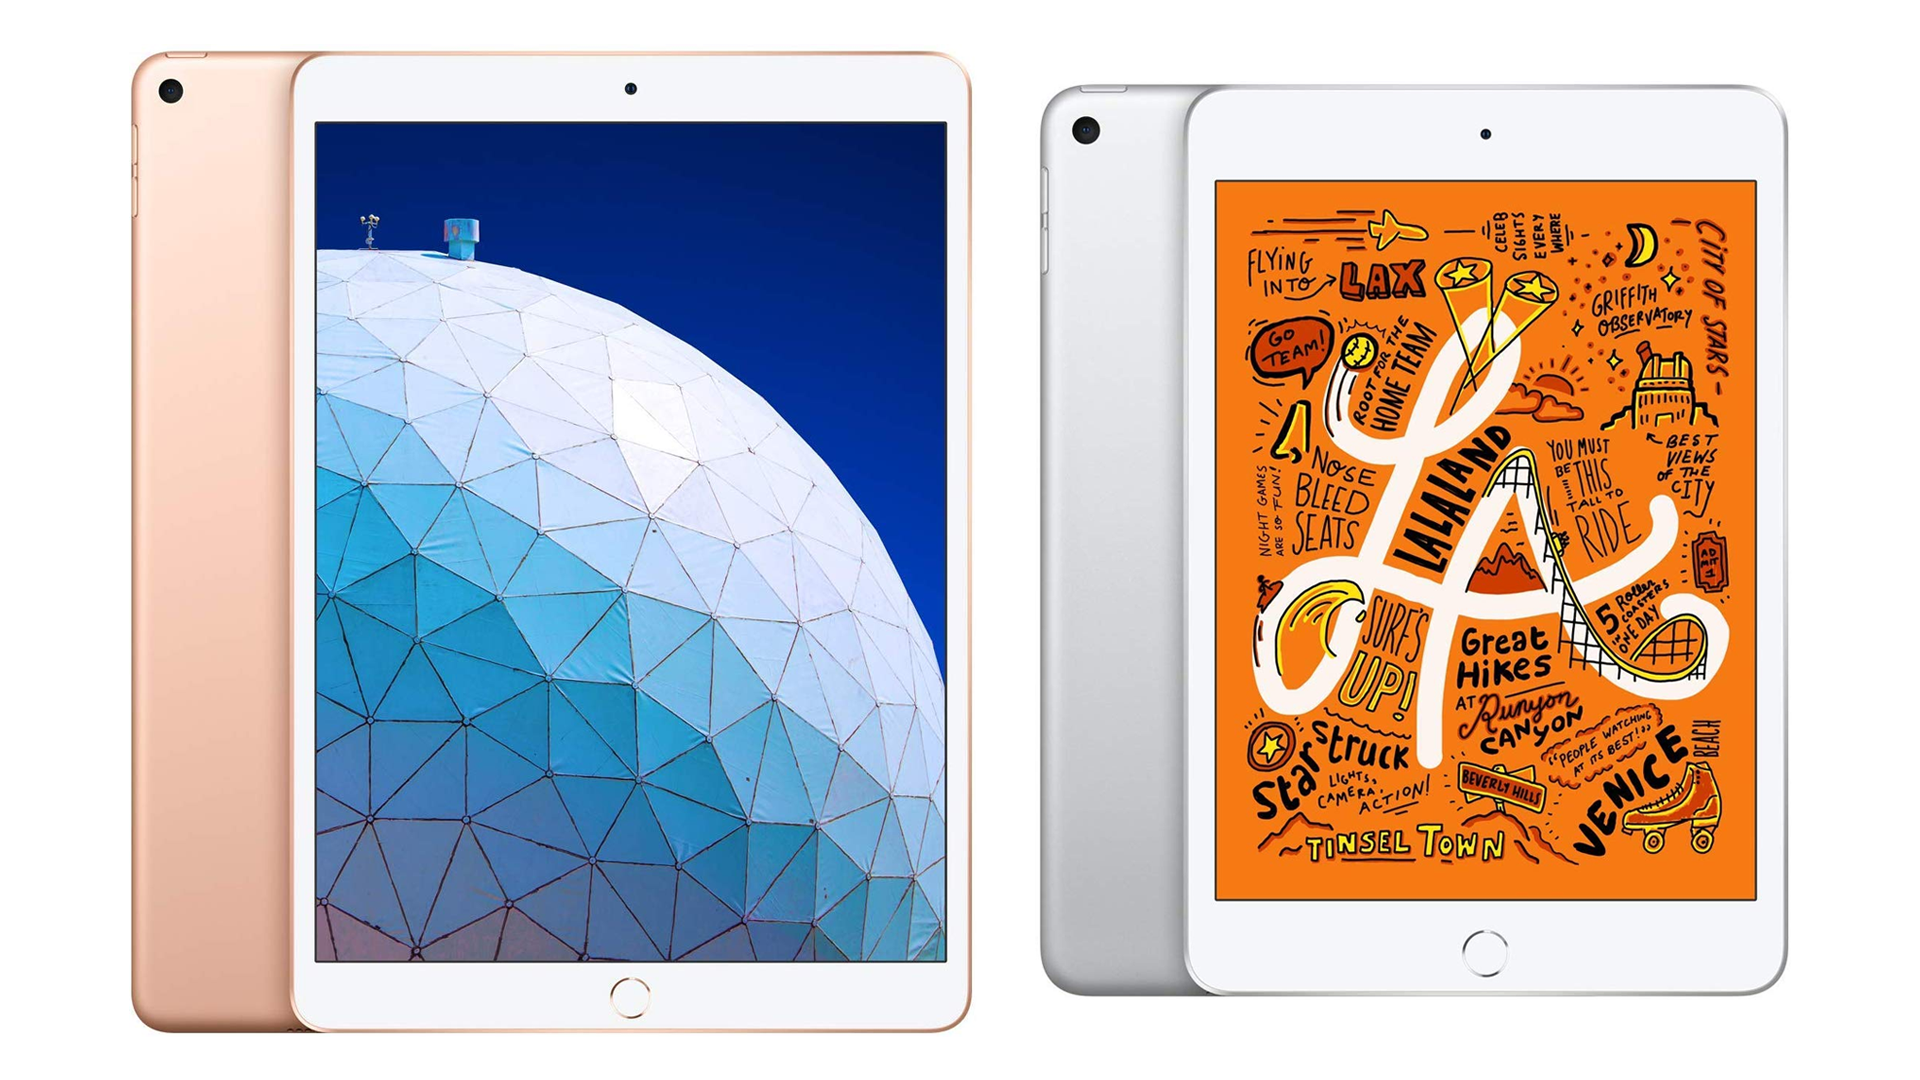 The iPad Air and iPad Mini